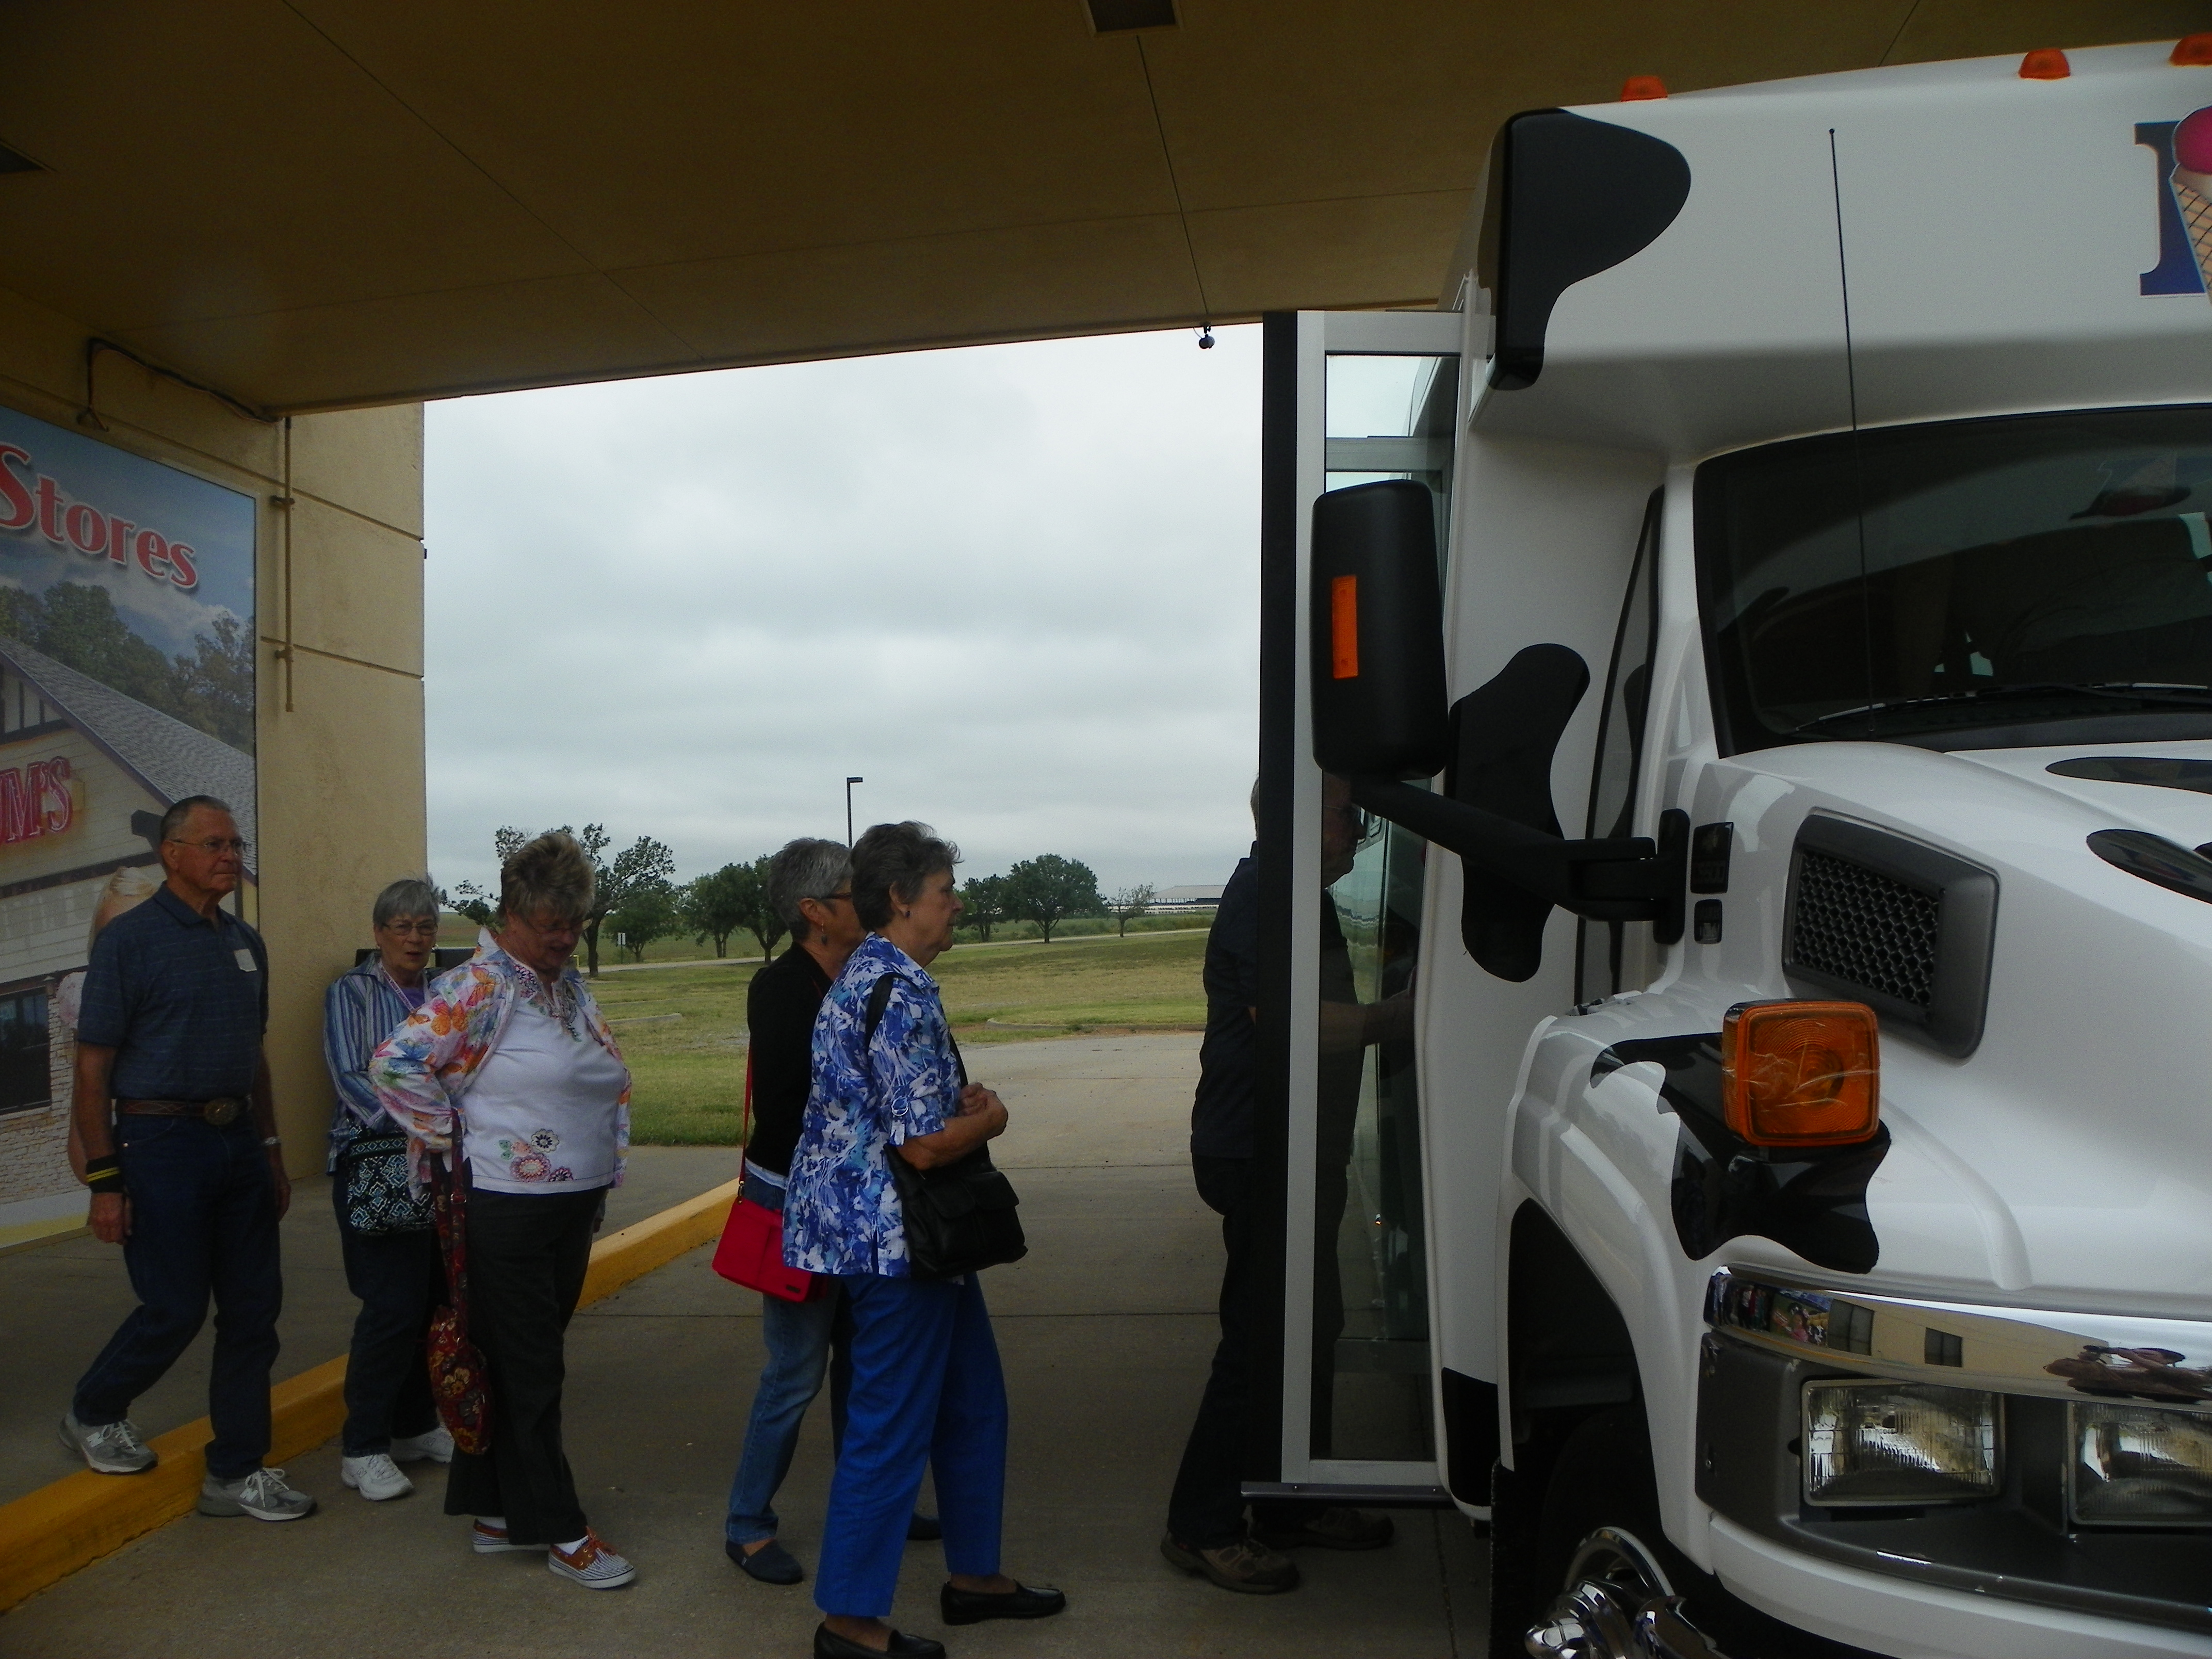 putnam senior singles Okc's non-profit travel club exclusively for seniors  and visit our facebook page @ putnam city retiree travel club or the public  monthly singles .